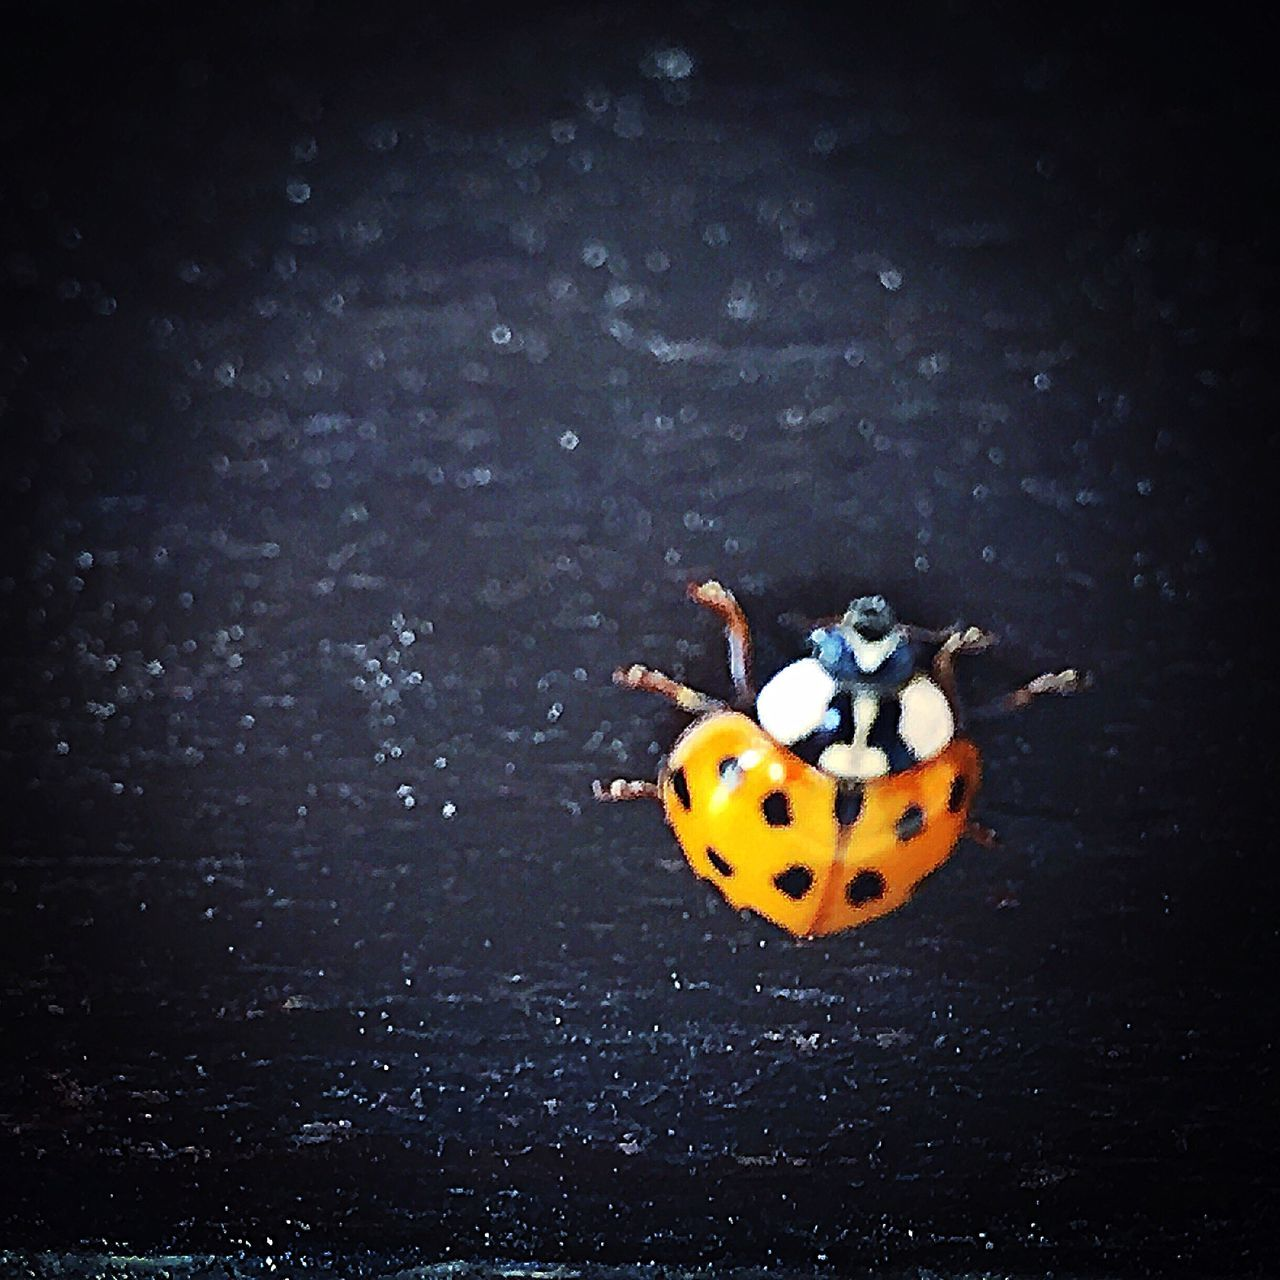 ladybug, insect, animal themes, no people, animals in the wild, one animal, close-up, tiny, outdoors, day, nature